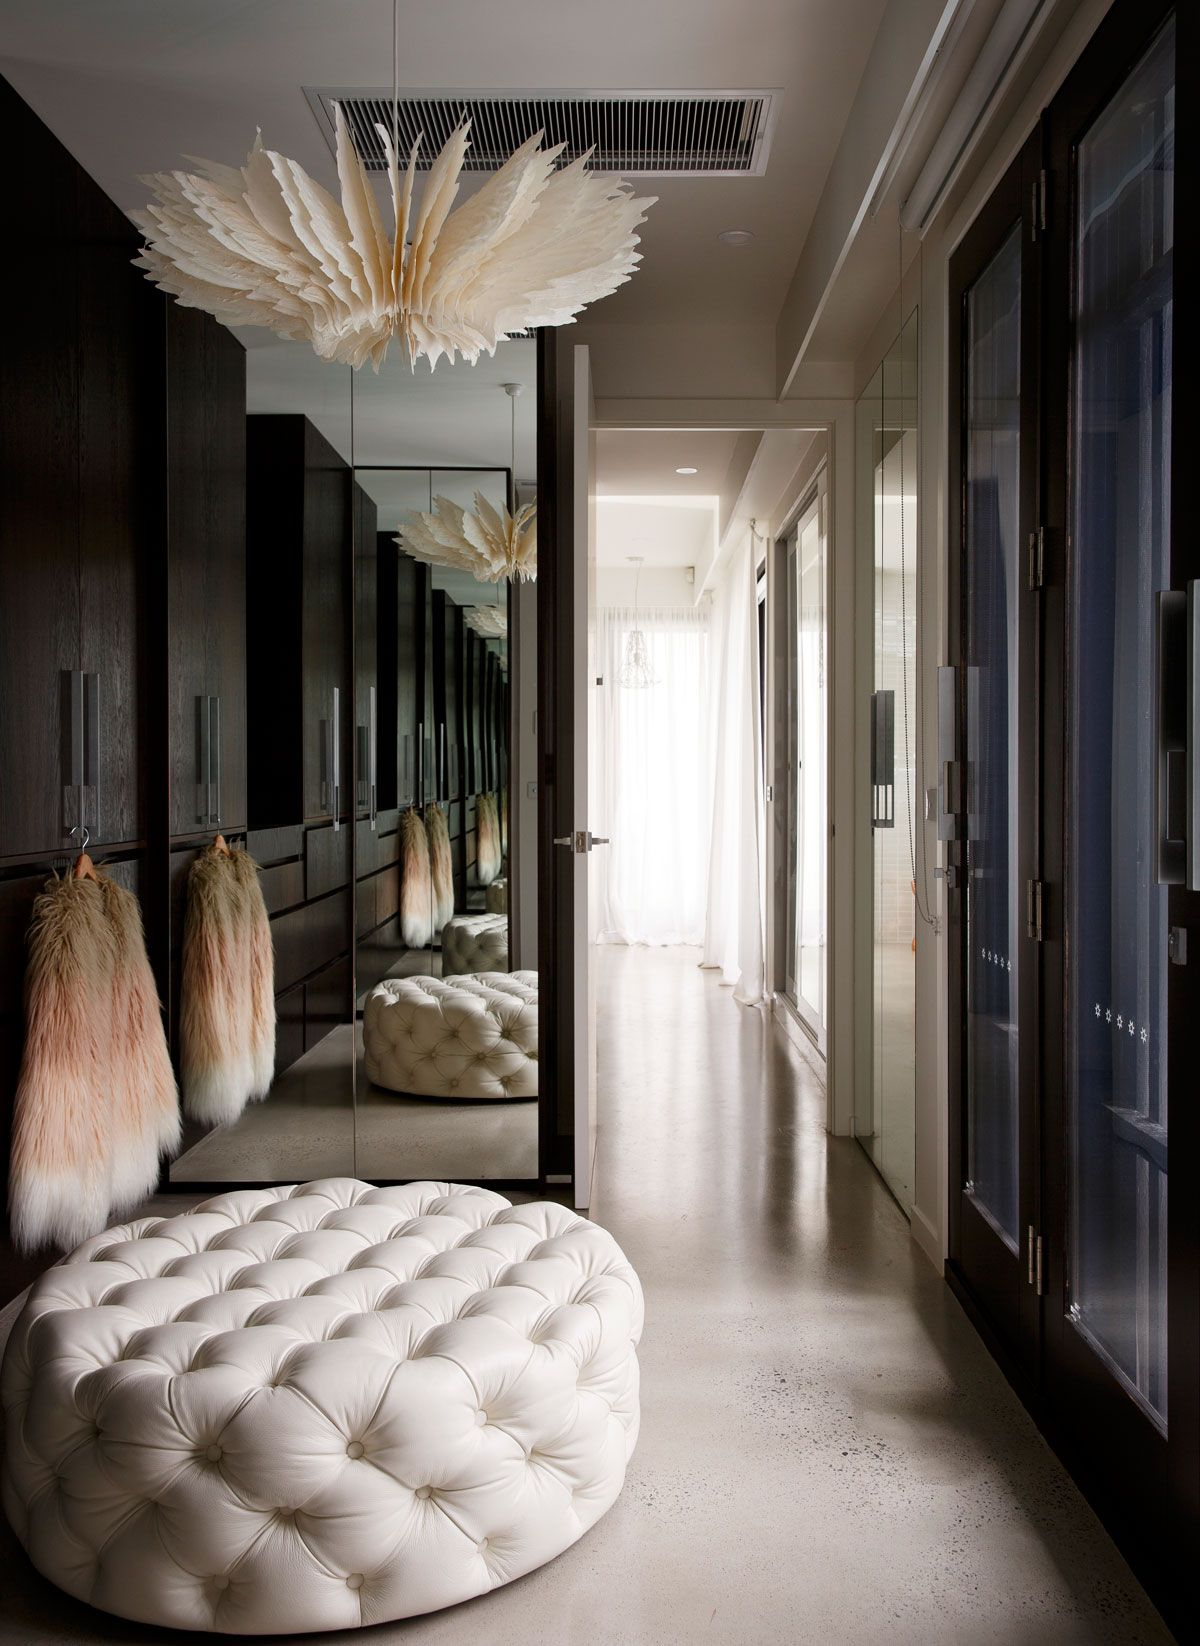 Bec Judd S Dreamy Walk In Closet Complete With Tufted Ottoman And Polished Concrete Floors That Light Fixture